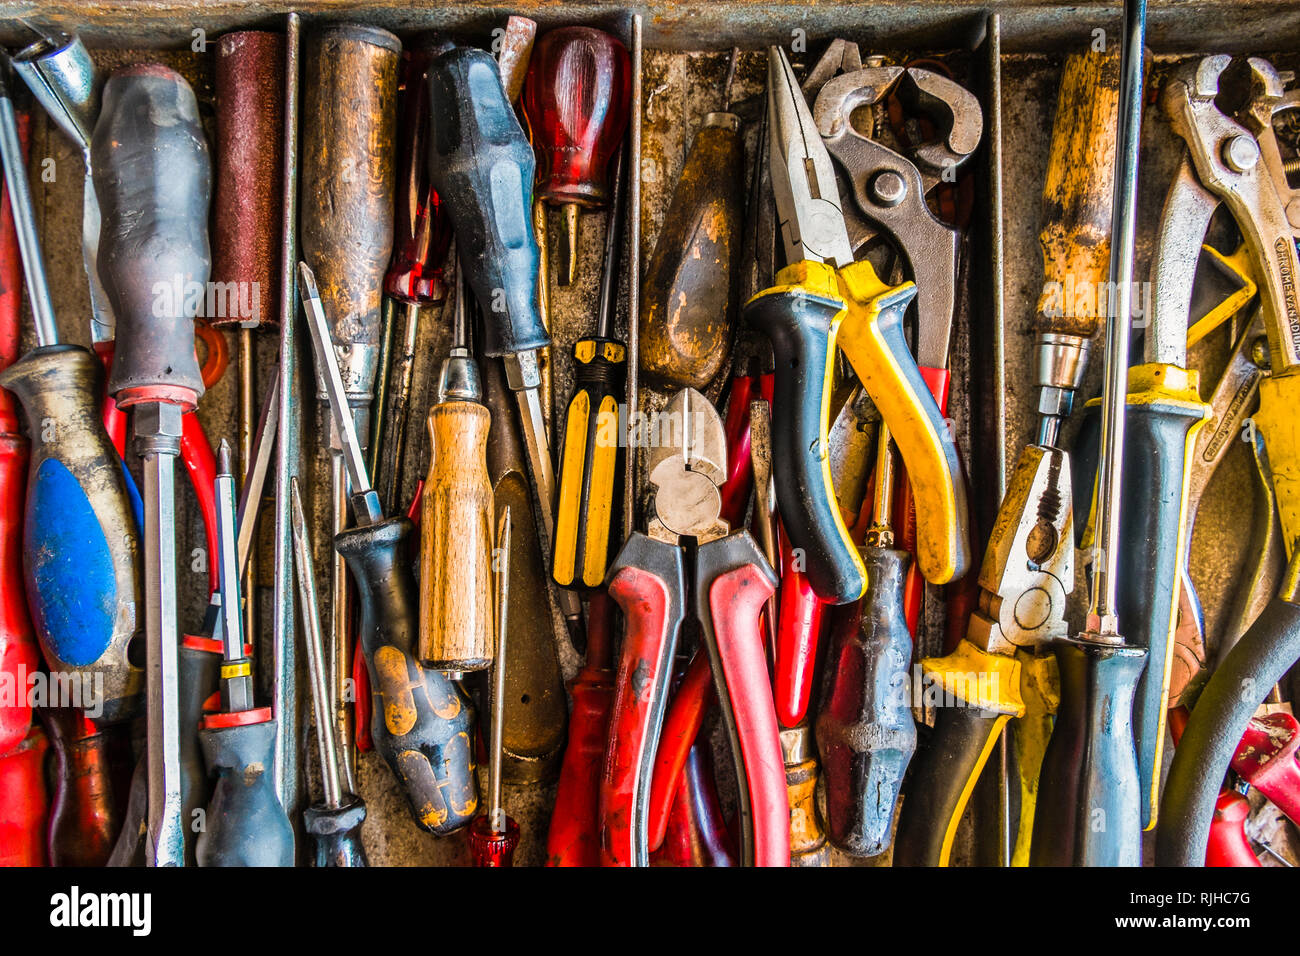 old, used tools in a toolbox Stock Photo